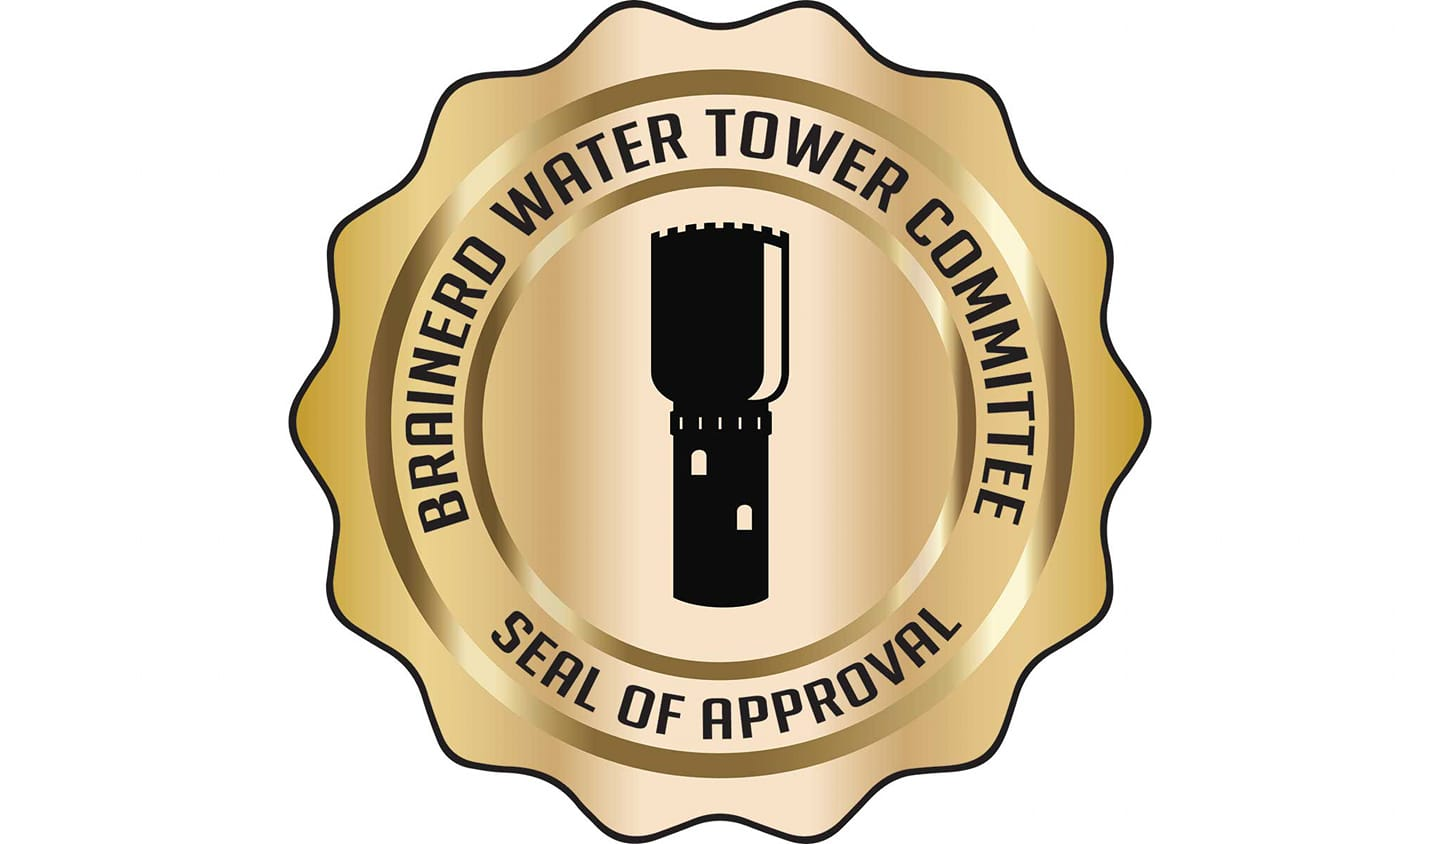 WaterTower Seal